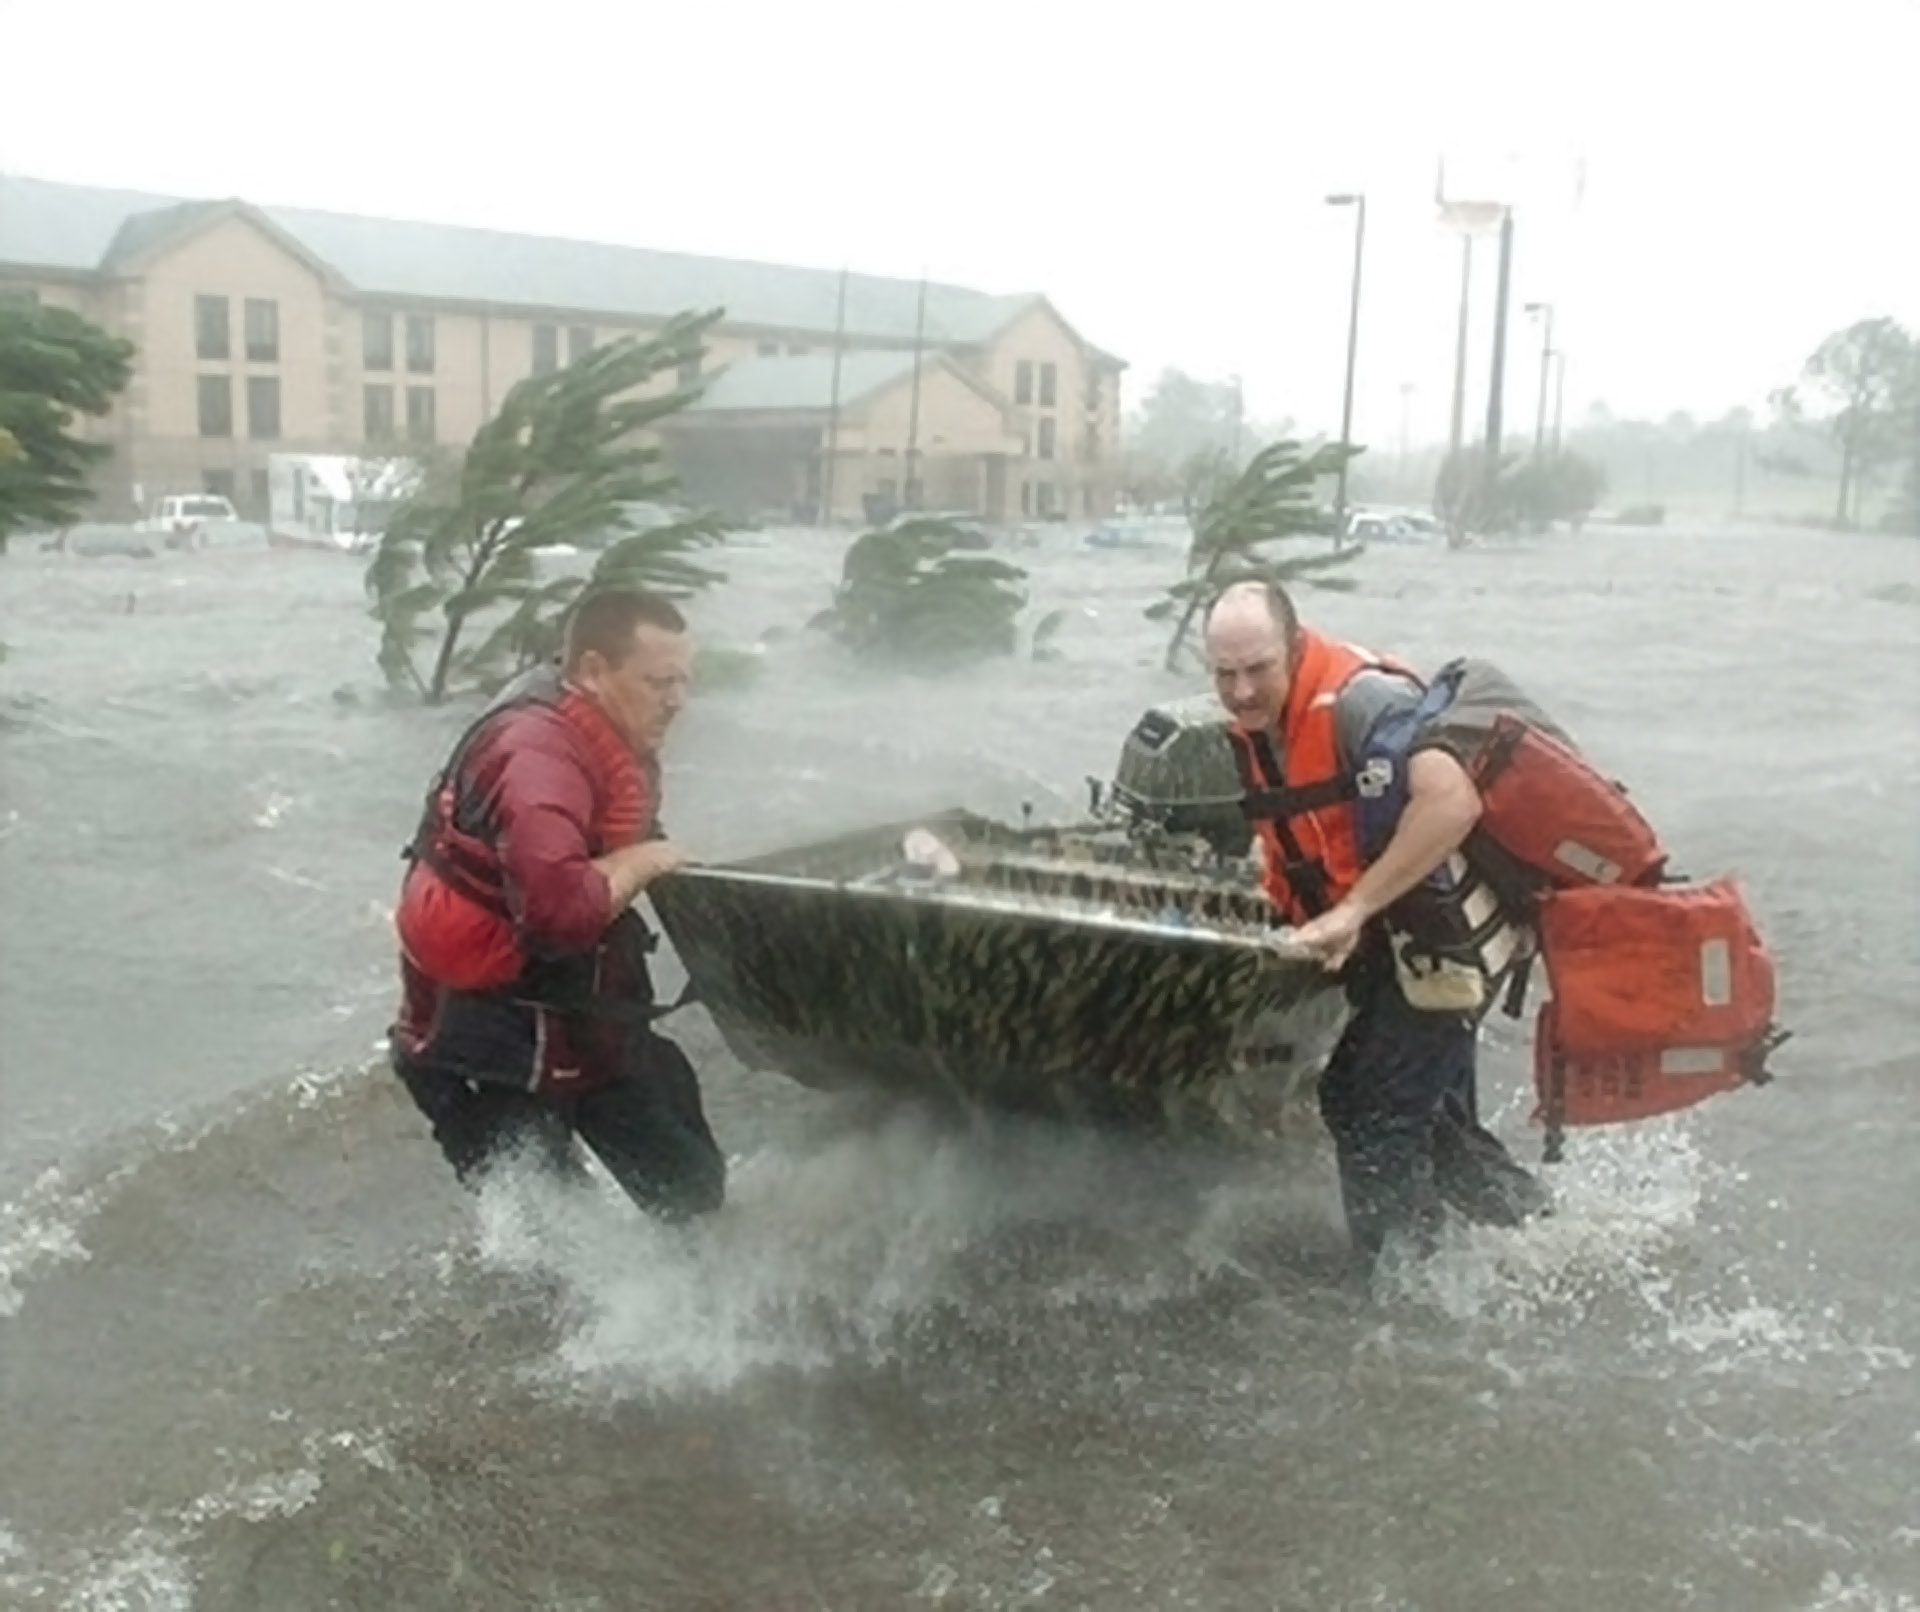 Fire and rescue personnel launch a boat amid floodwaters from Hurricane Katrina, as they head out to rescue a family Tuesday, Aug. 29, 2005, outside a hotel in Pascagoula, Miss. (AP Photo/The Tampa Tribune, Michael Spooneybarger)